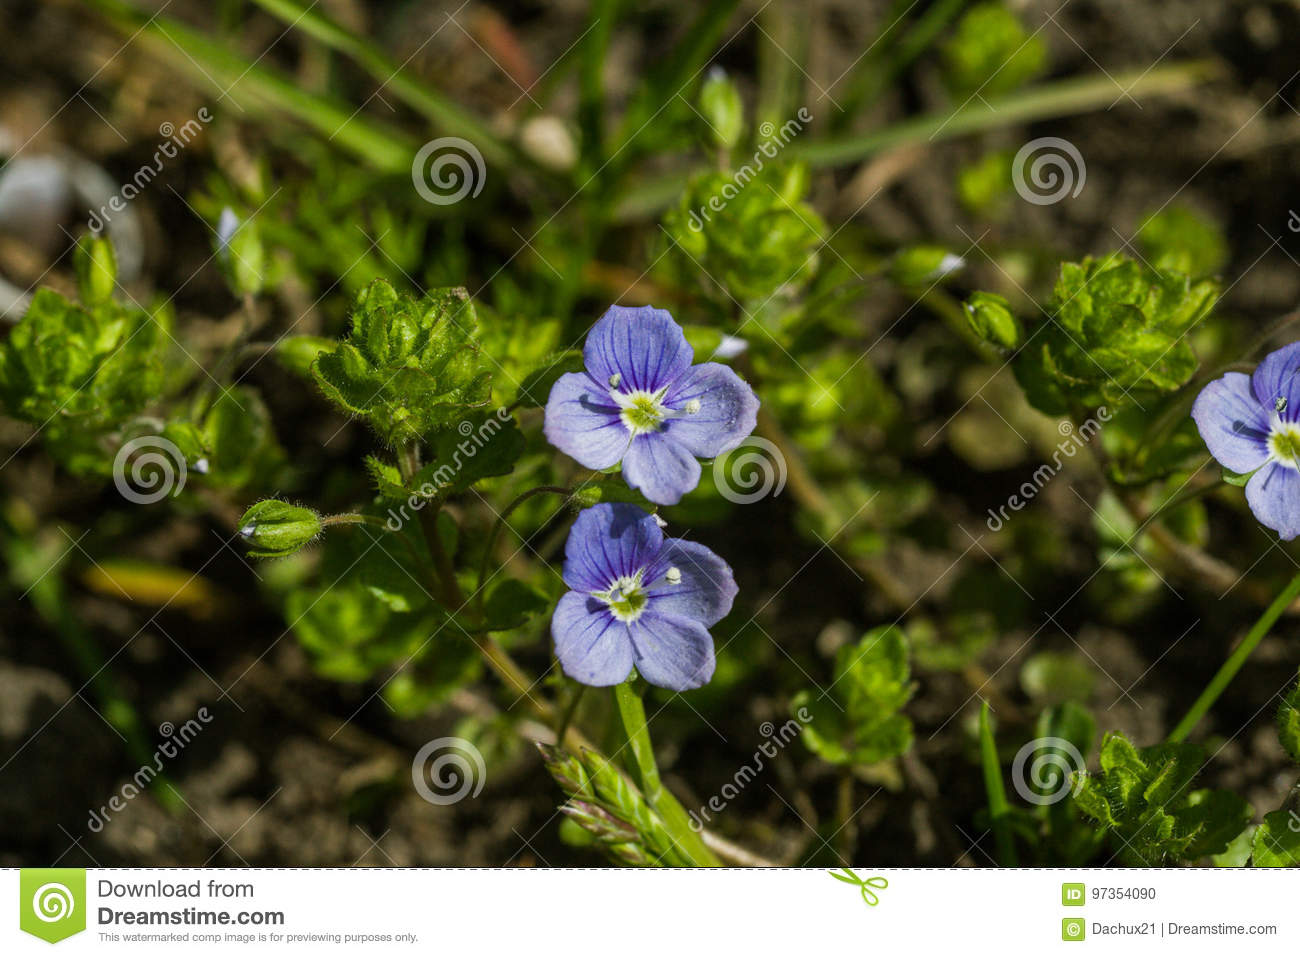 Beautiful Small Blue Flowers In The Grass Stock Photo Image Of